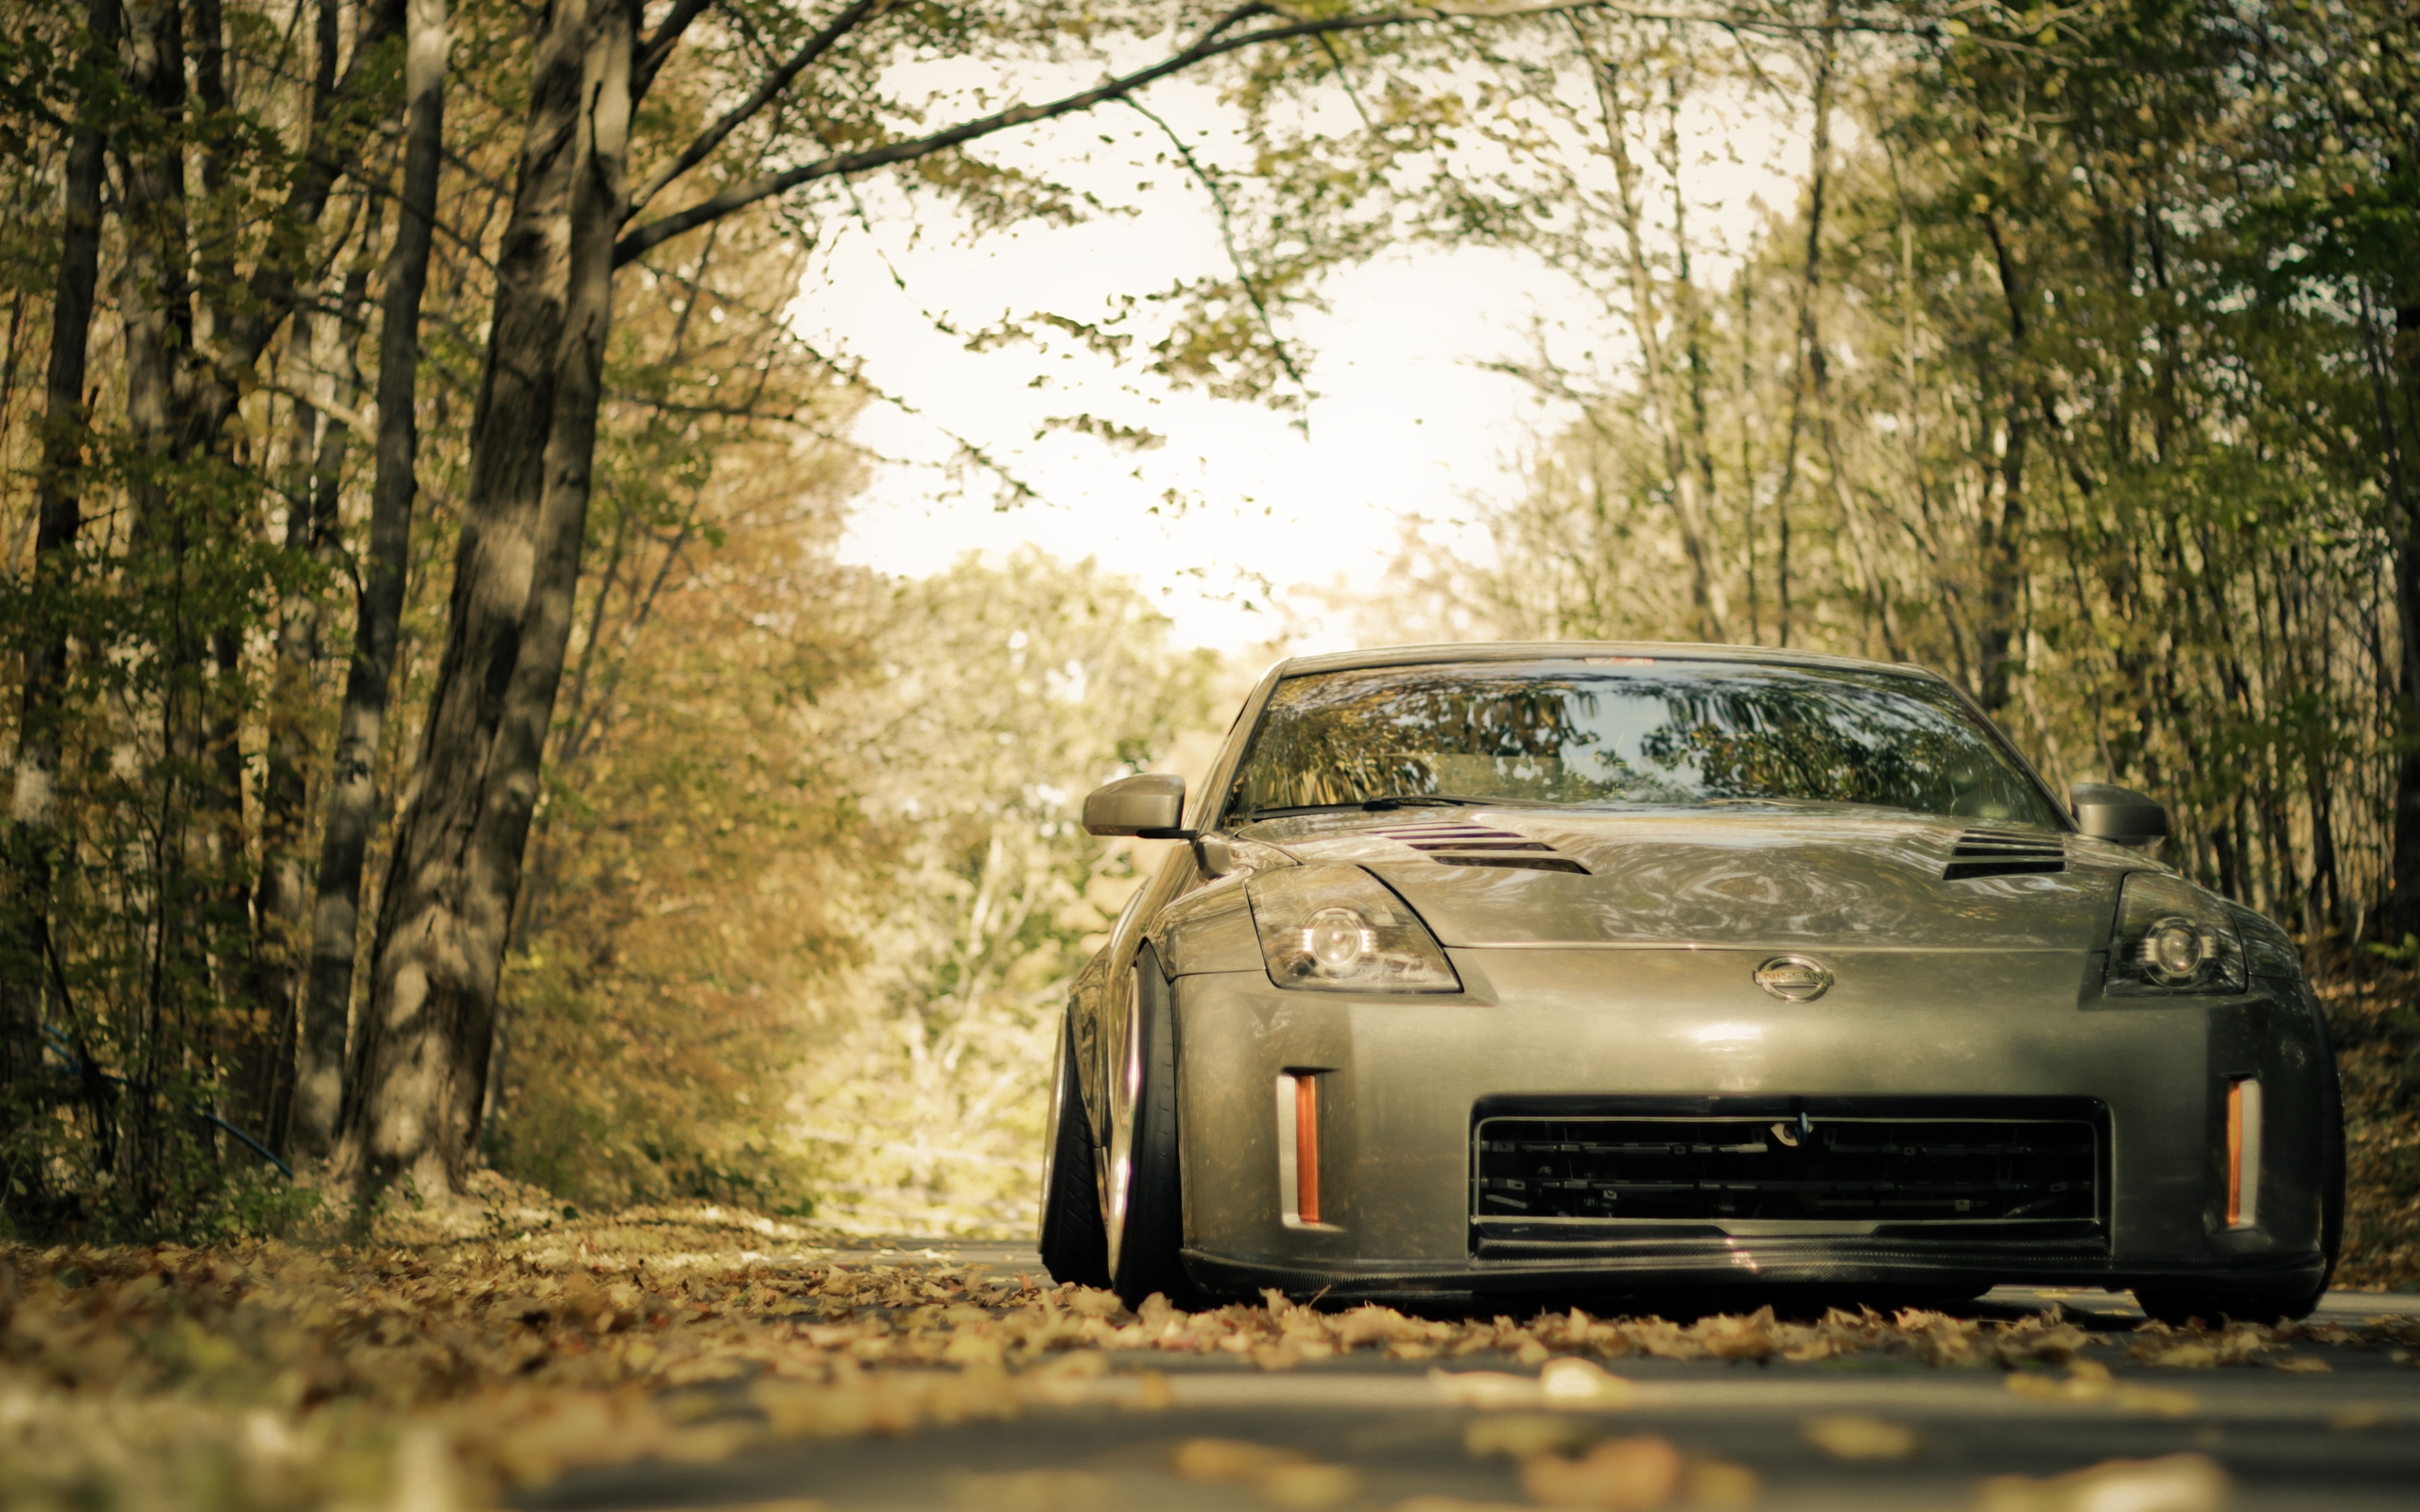 2560x1600 - Nissan 350Z Wallpapers 16